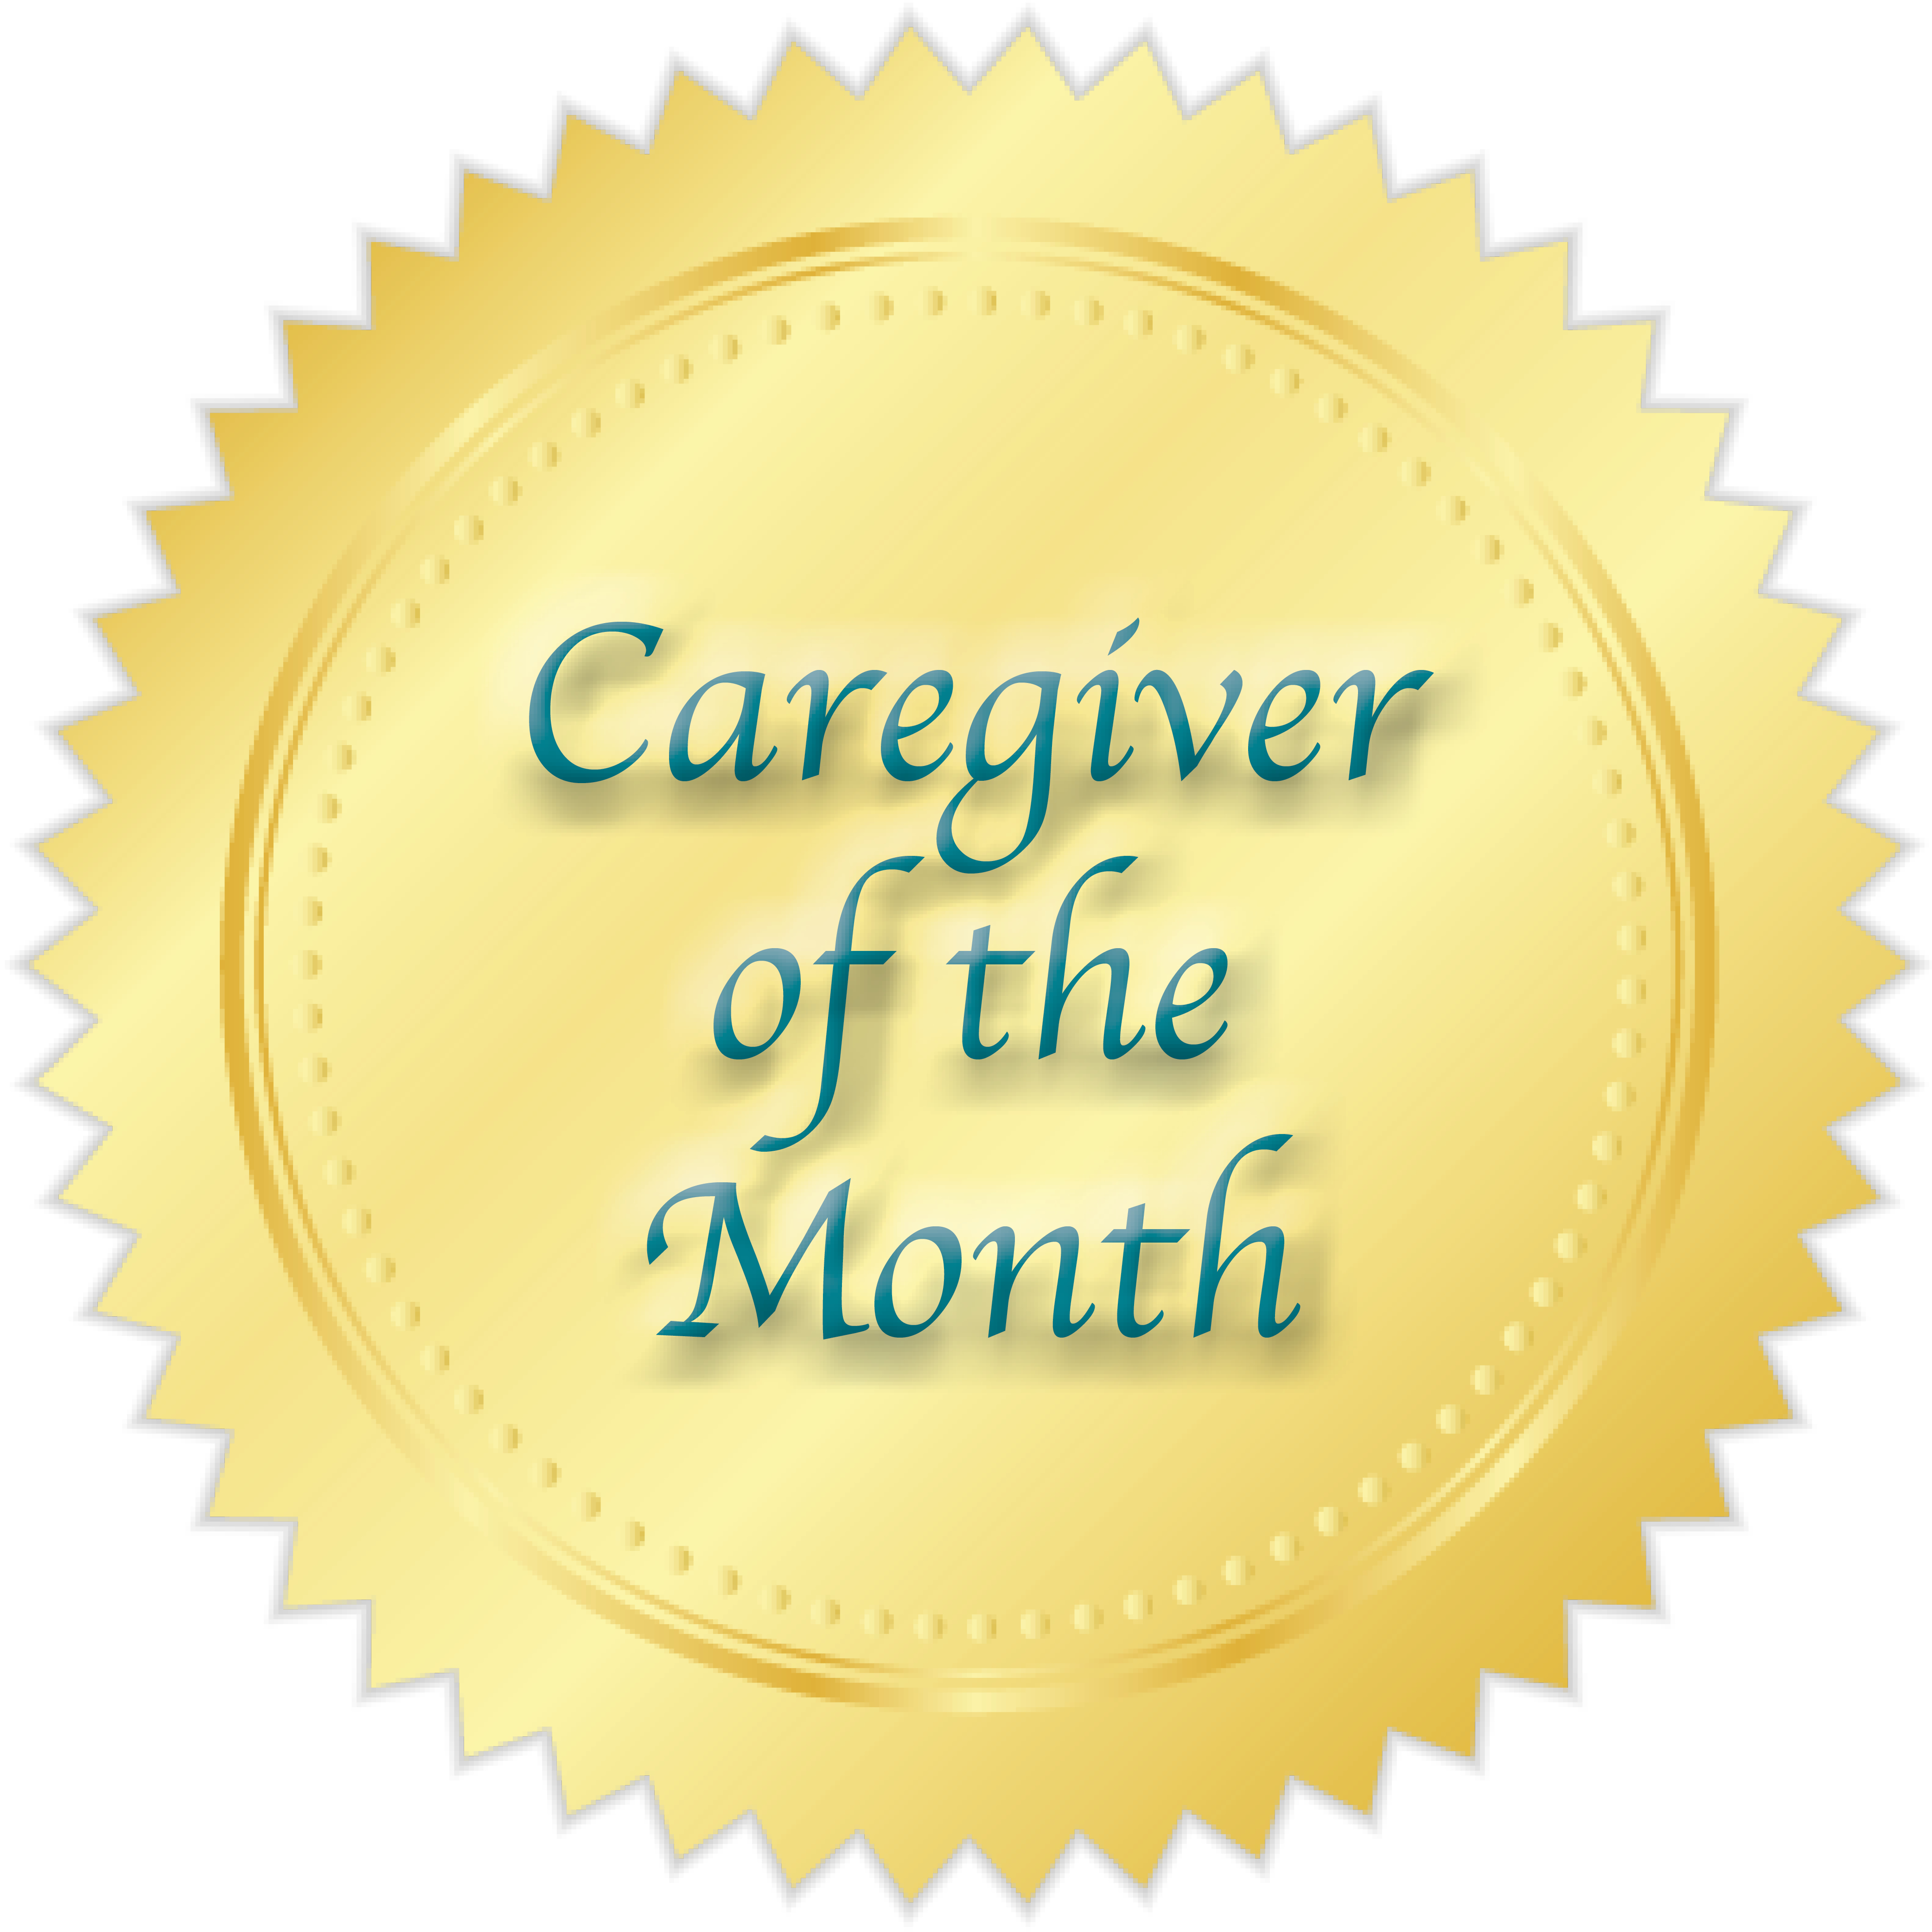 Caregiver of the Month Award